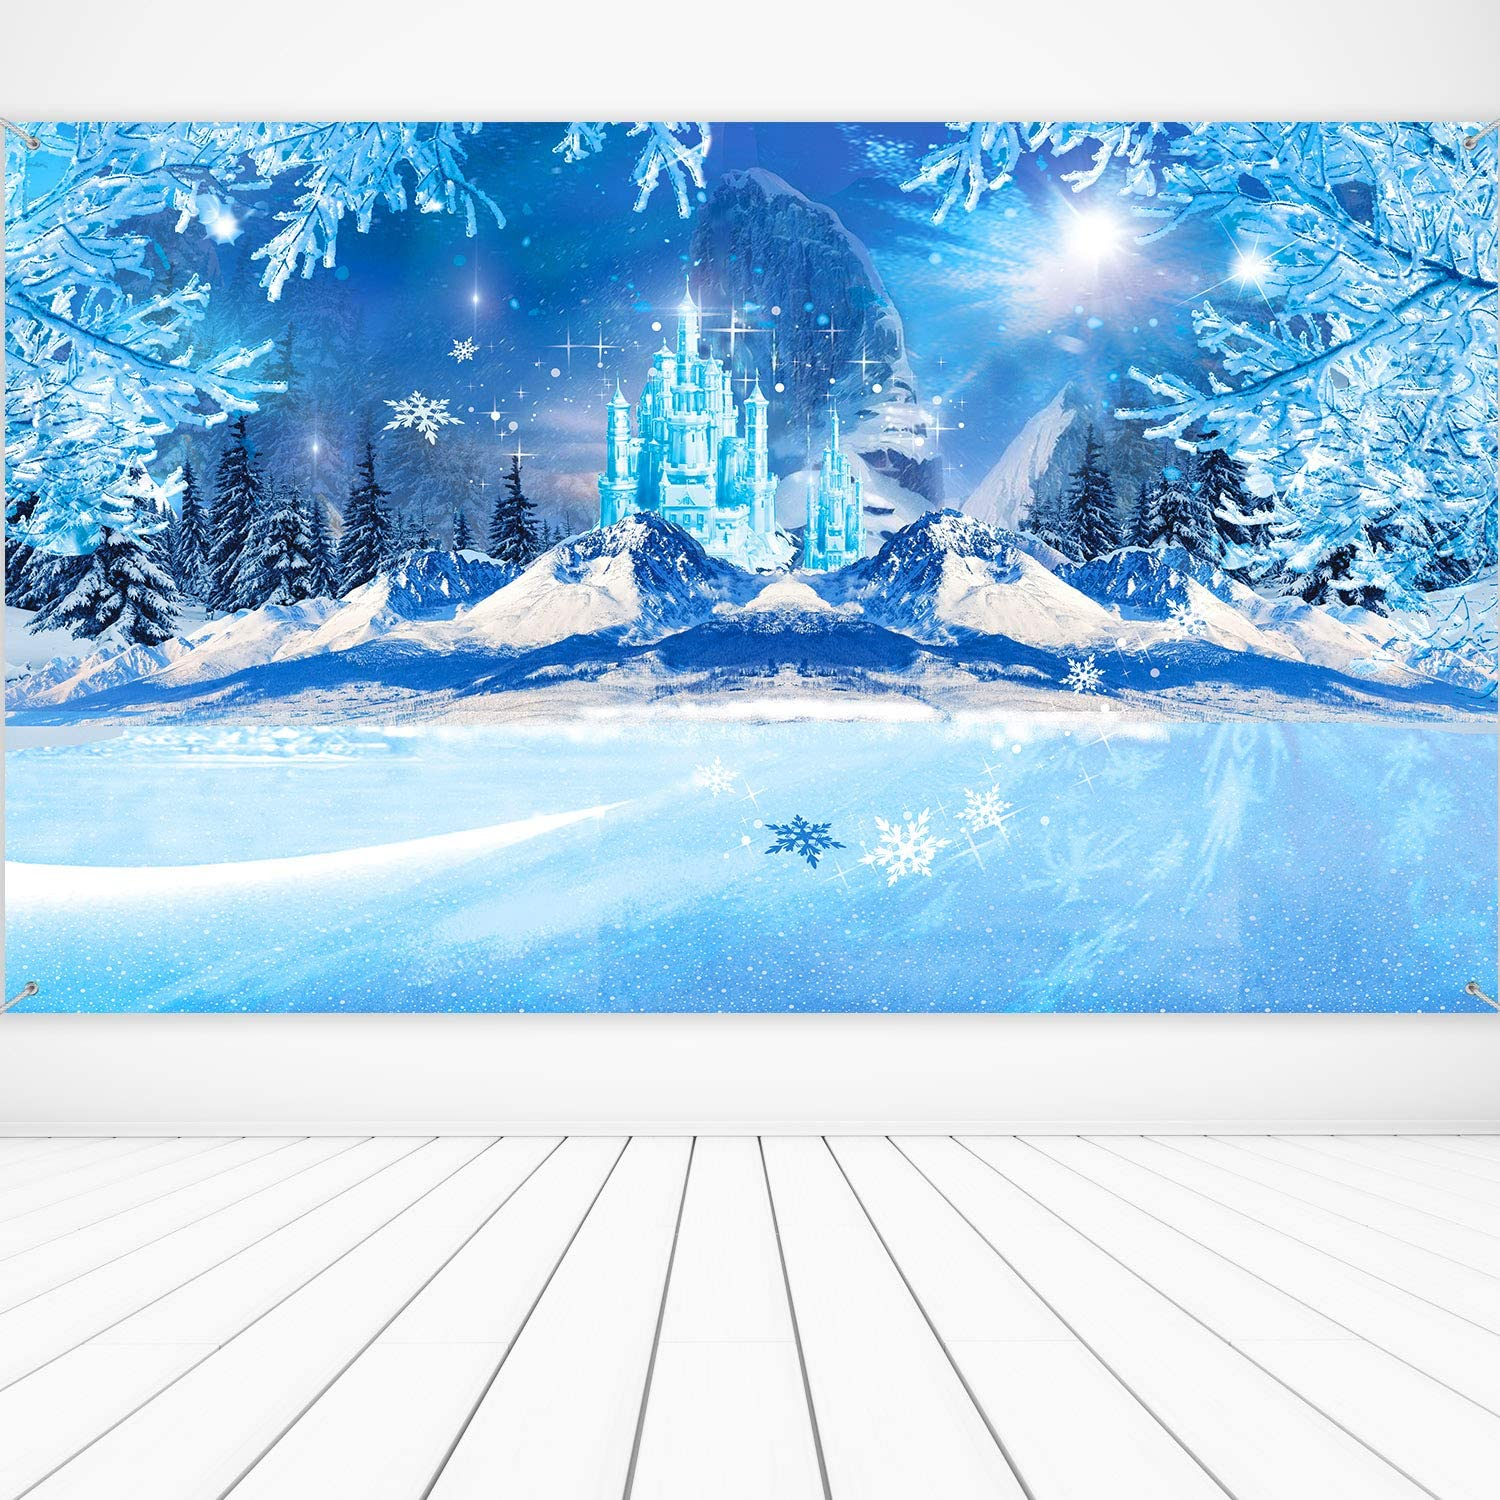 Christmas Winter Party Decoration Supplies, Large Fabric Winter Wonderland Backdrop for Winter Frozen Themed Party Decor, White World Winter Backdrop Ice Snow Photography Backdrops Background Banner